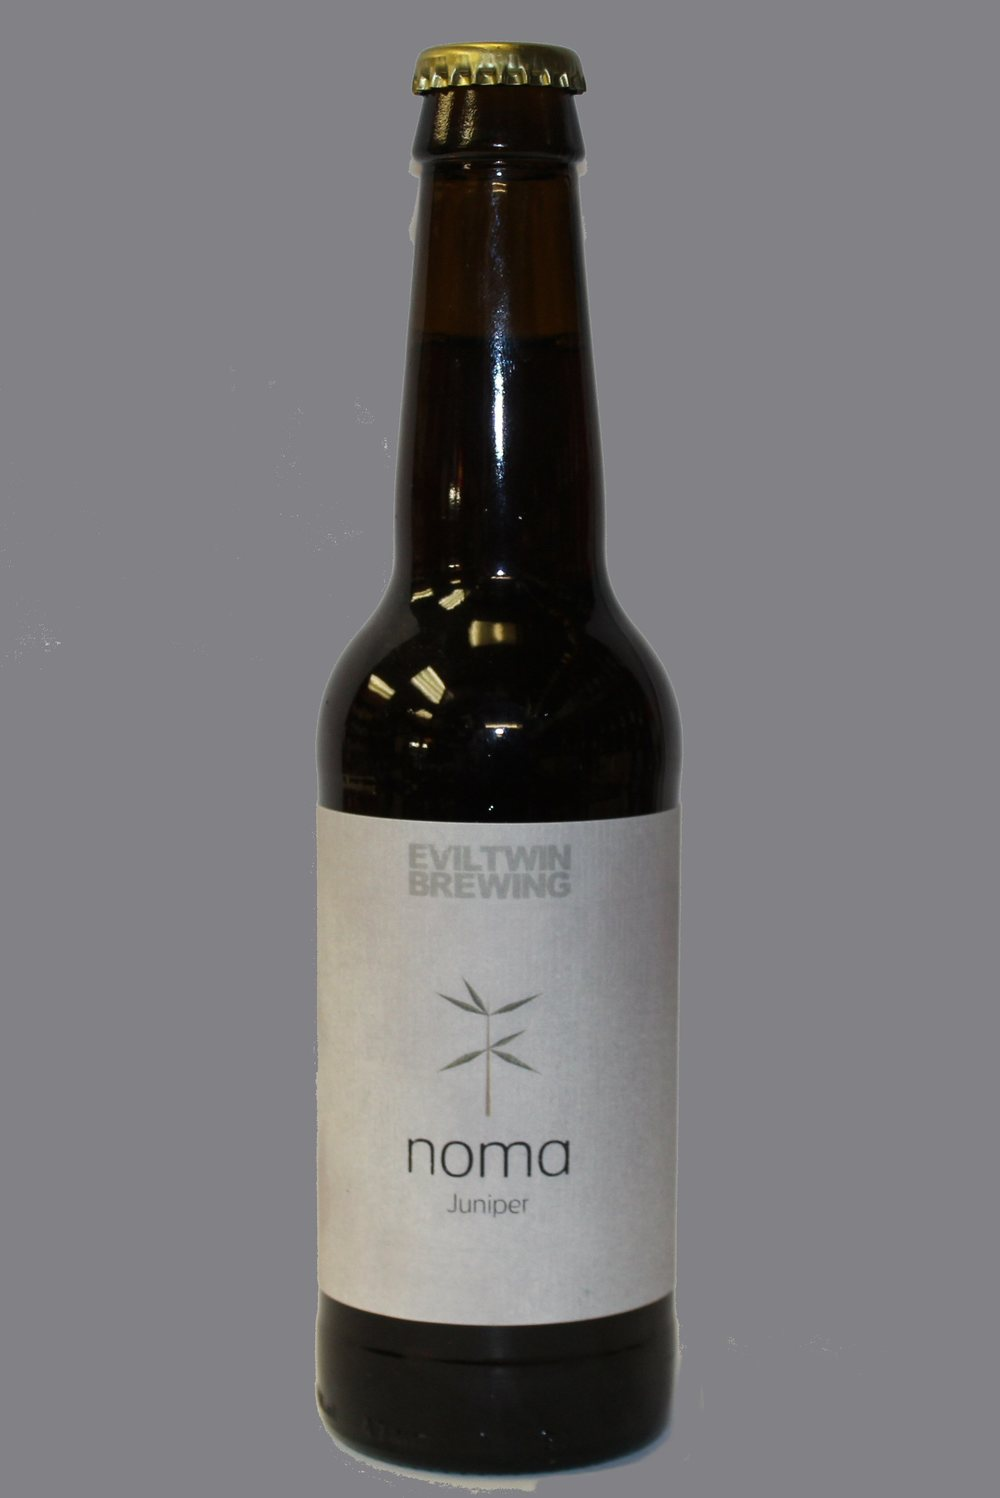 EVILTWIN BREWING-Noma.jpg